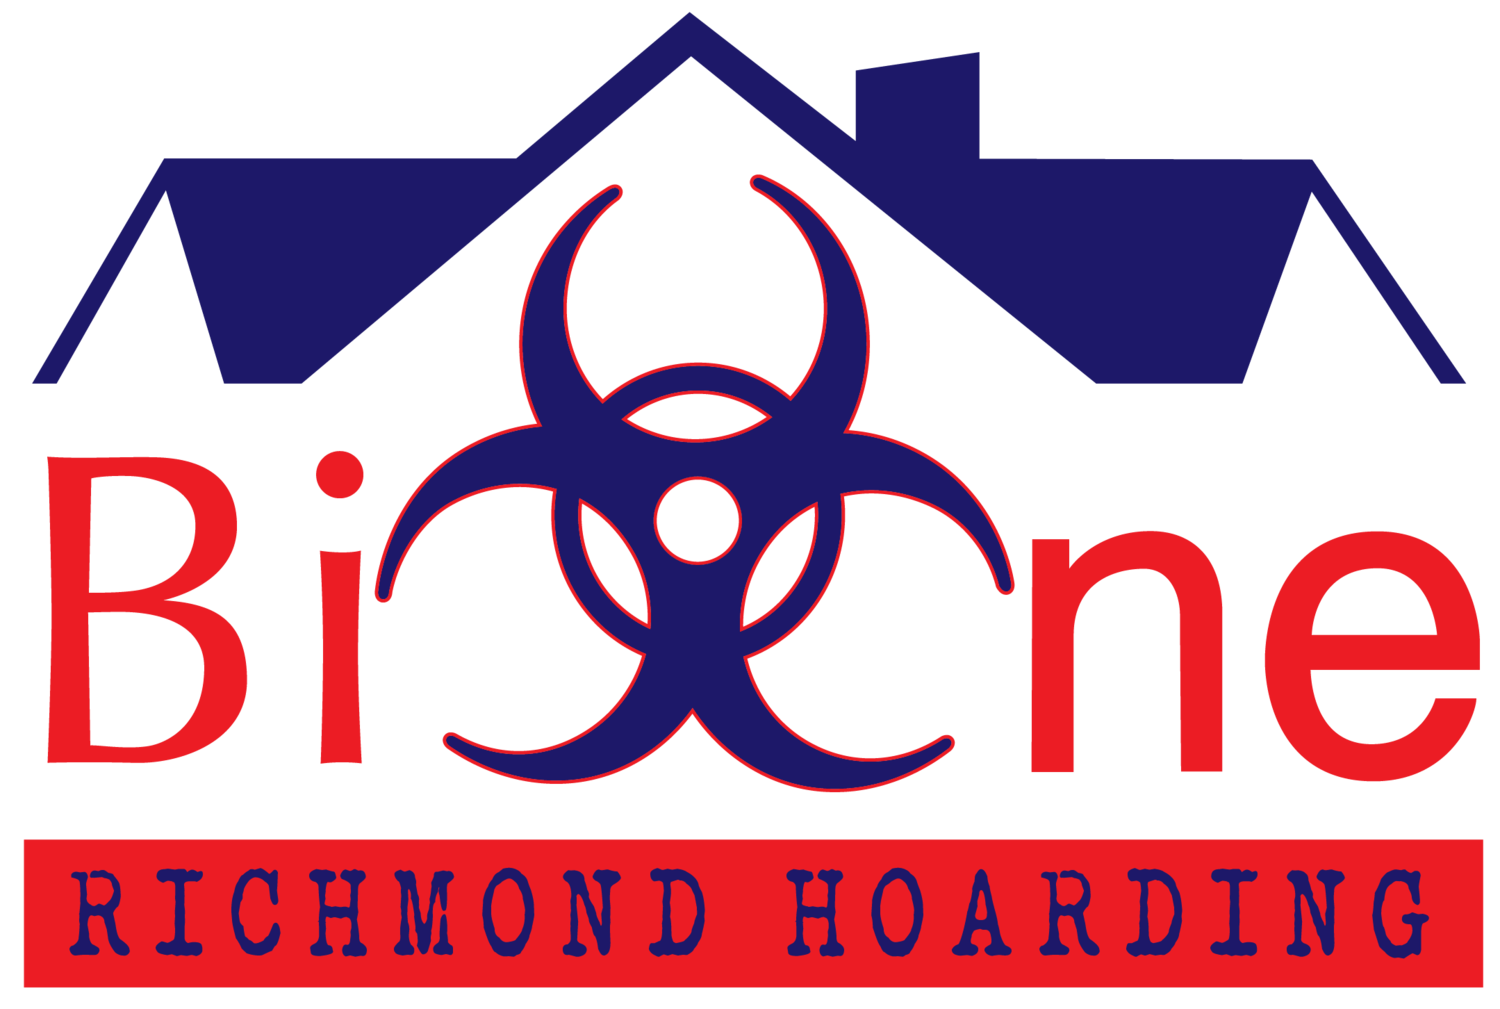 Richmond Hoarding